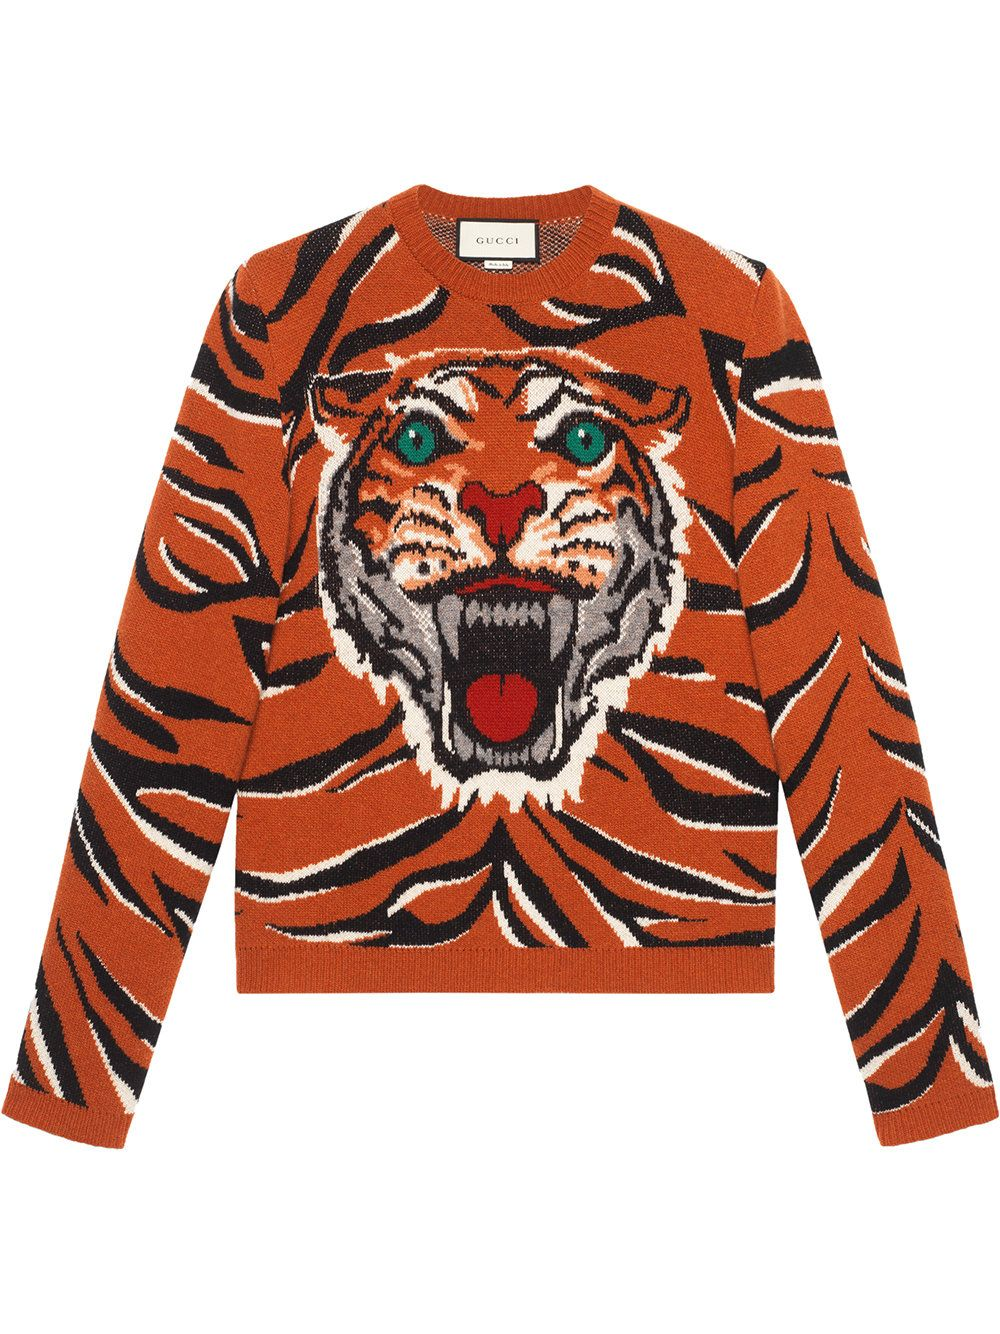 8a83bb45879 GUCCI TIGER INTARSIA WOOL SWEATER.  gucci  cloth